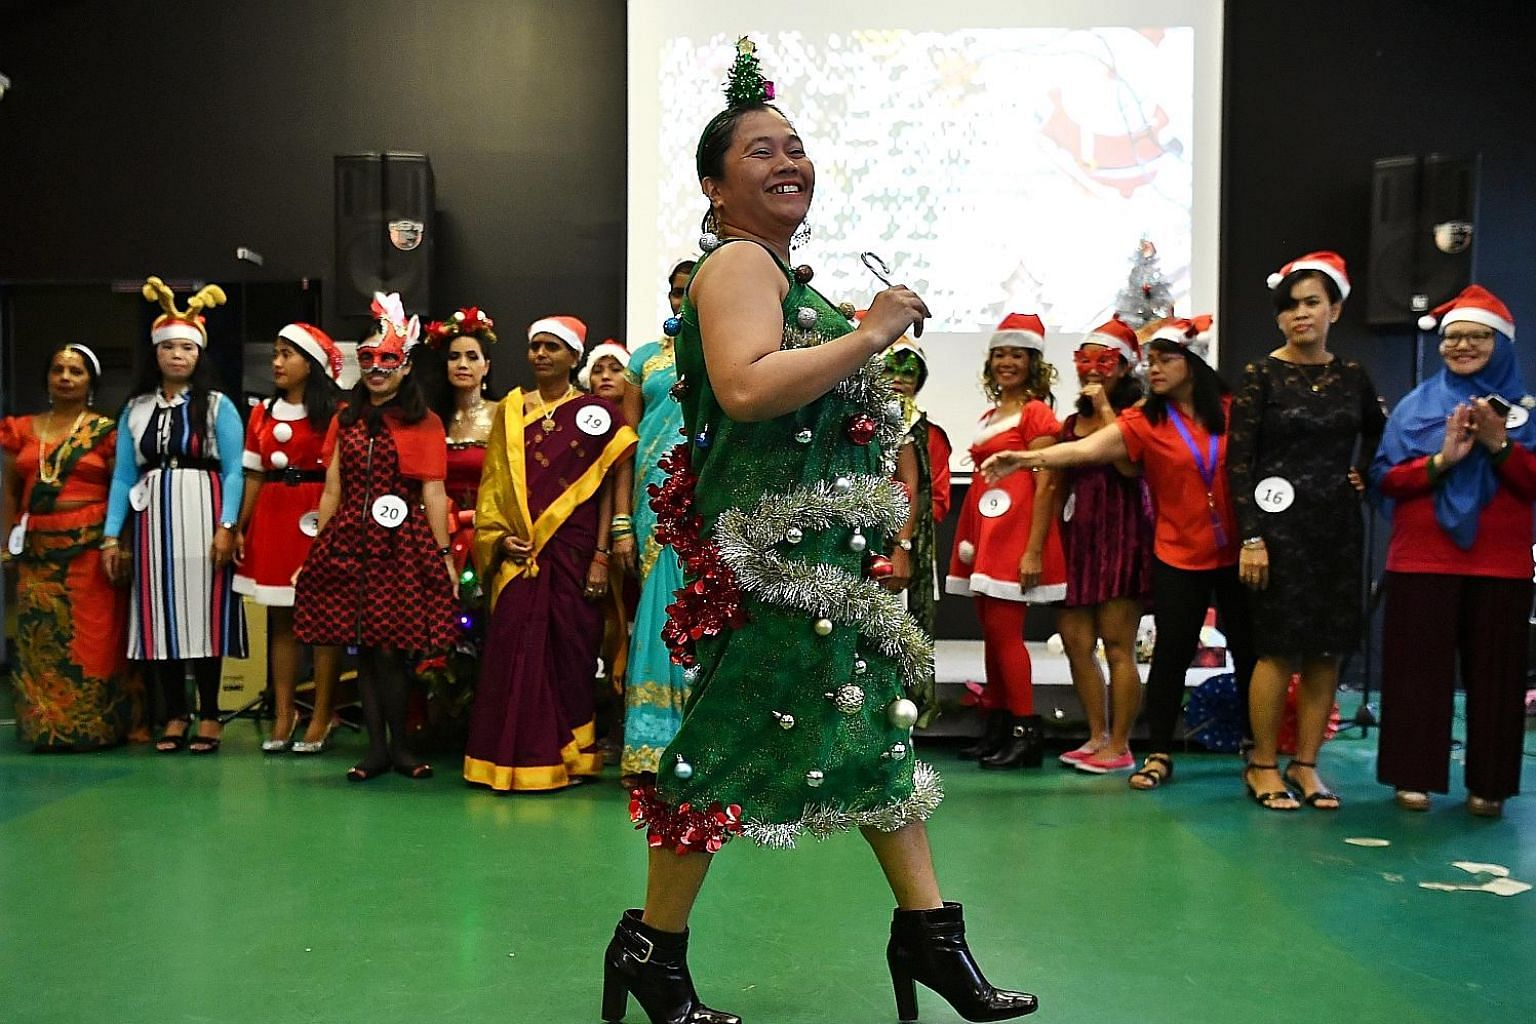 Filipino domestic worker Jane Hortillas Gabinete, 43, dressed up as a Christmas tree for a best-dressed competition during the festive celebration organised by the Foreign Domestic Worker Association for Social Support and Training yesterday at its c